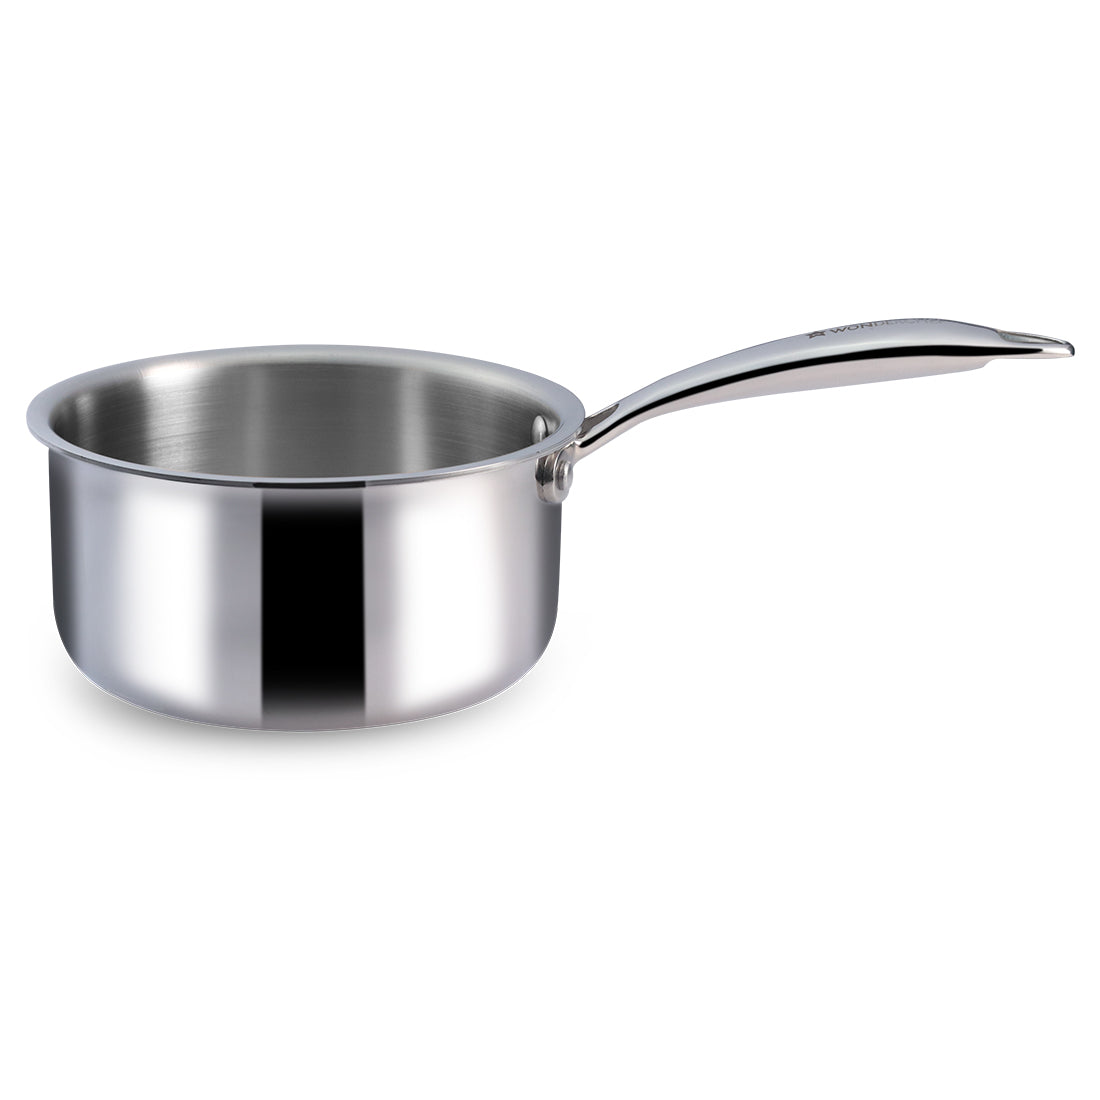 Nigella 3-ply Stainless Steel Sauce Pan-16cm, 1.5L, 2.6mm, Silver